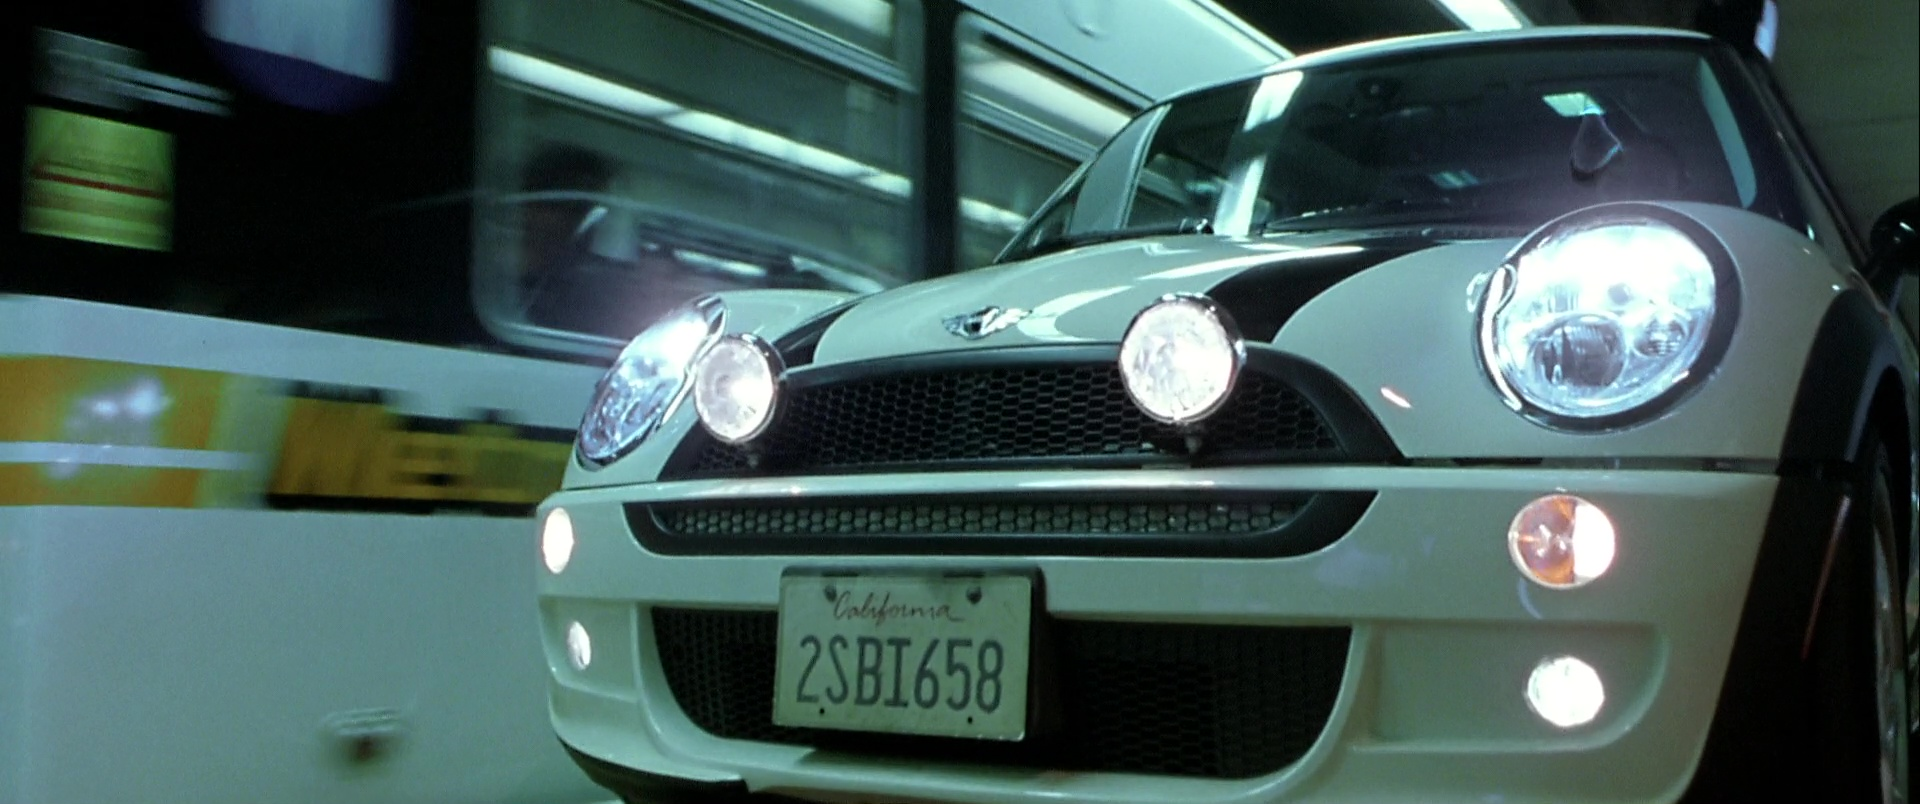 Mini Cooper S White Car Used By Jason Statham In The Italian Job